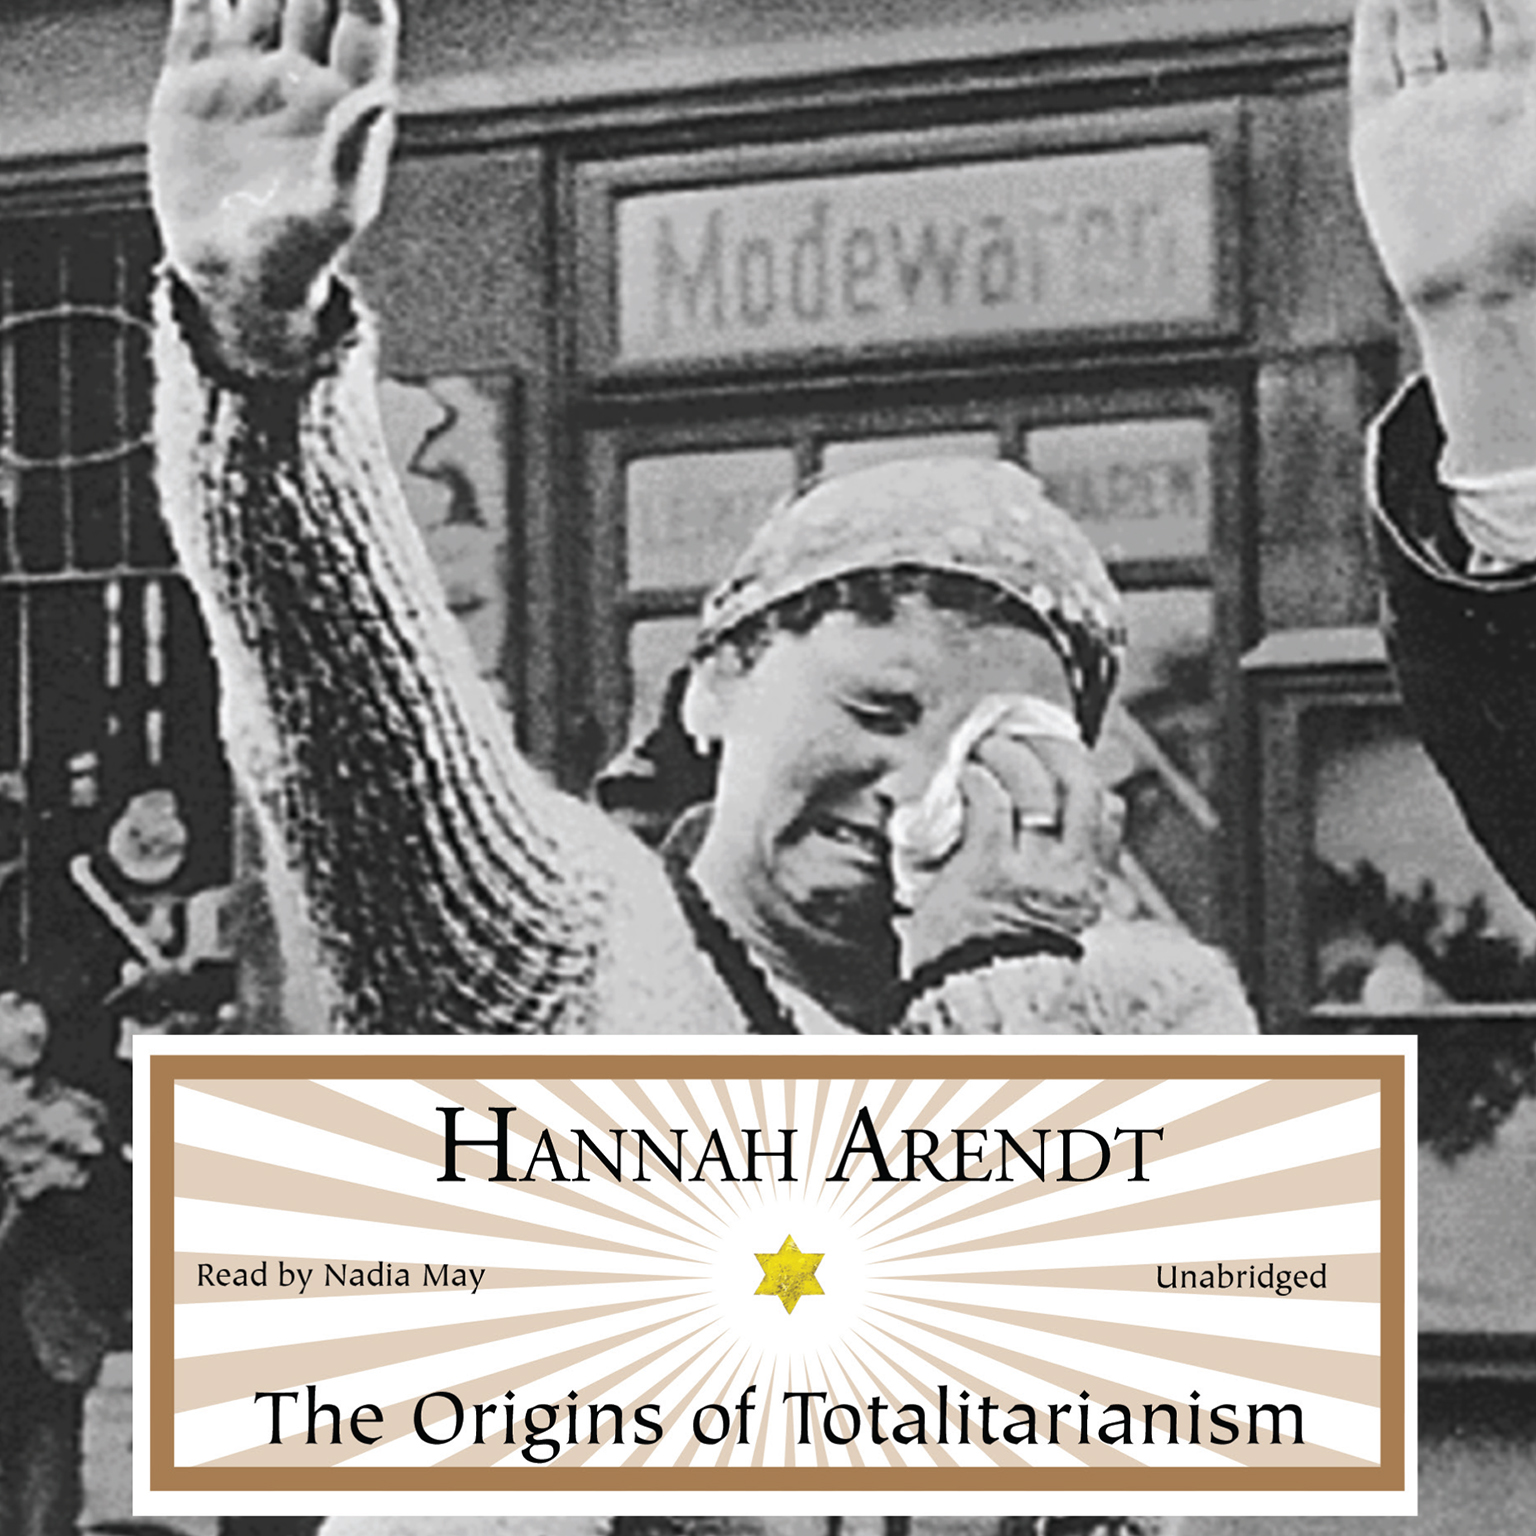 The Origins of Totalitarianism - Audiobook | Listen Instantly!